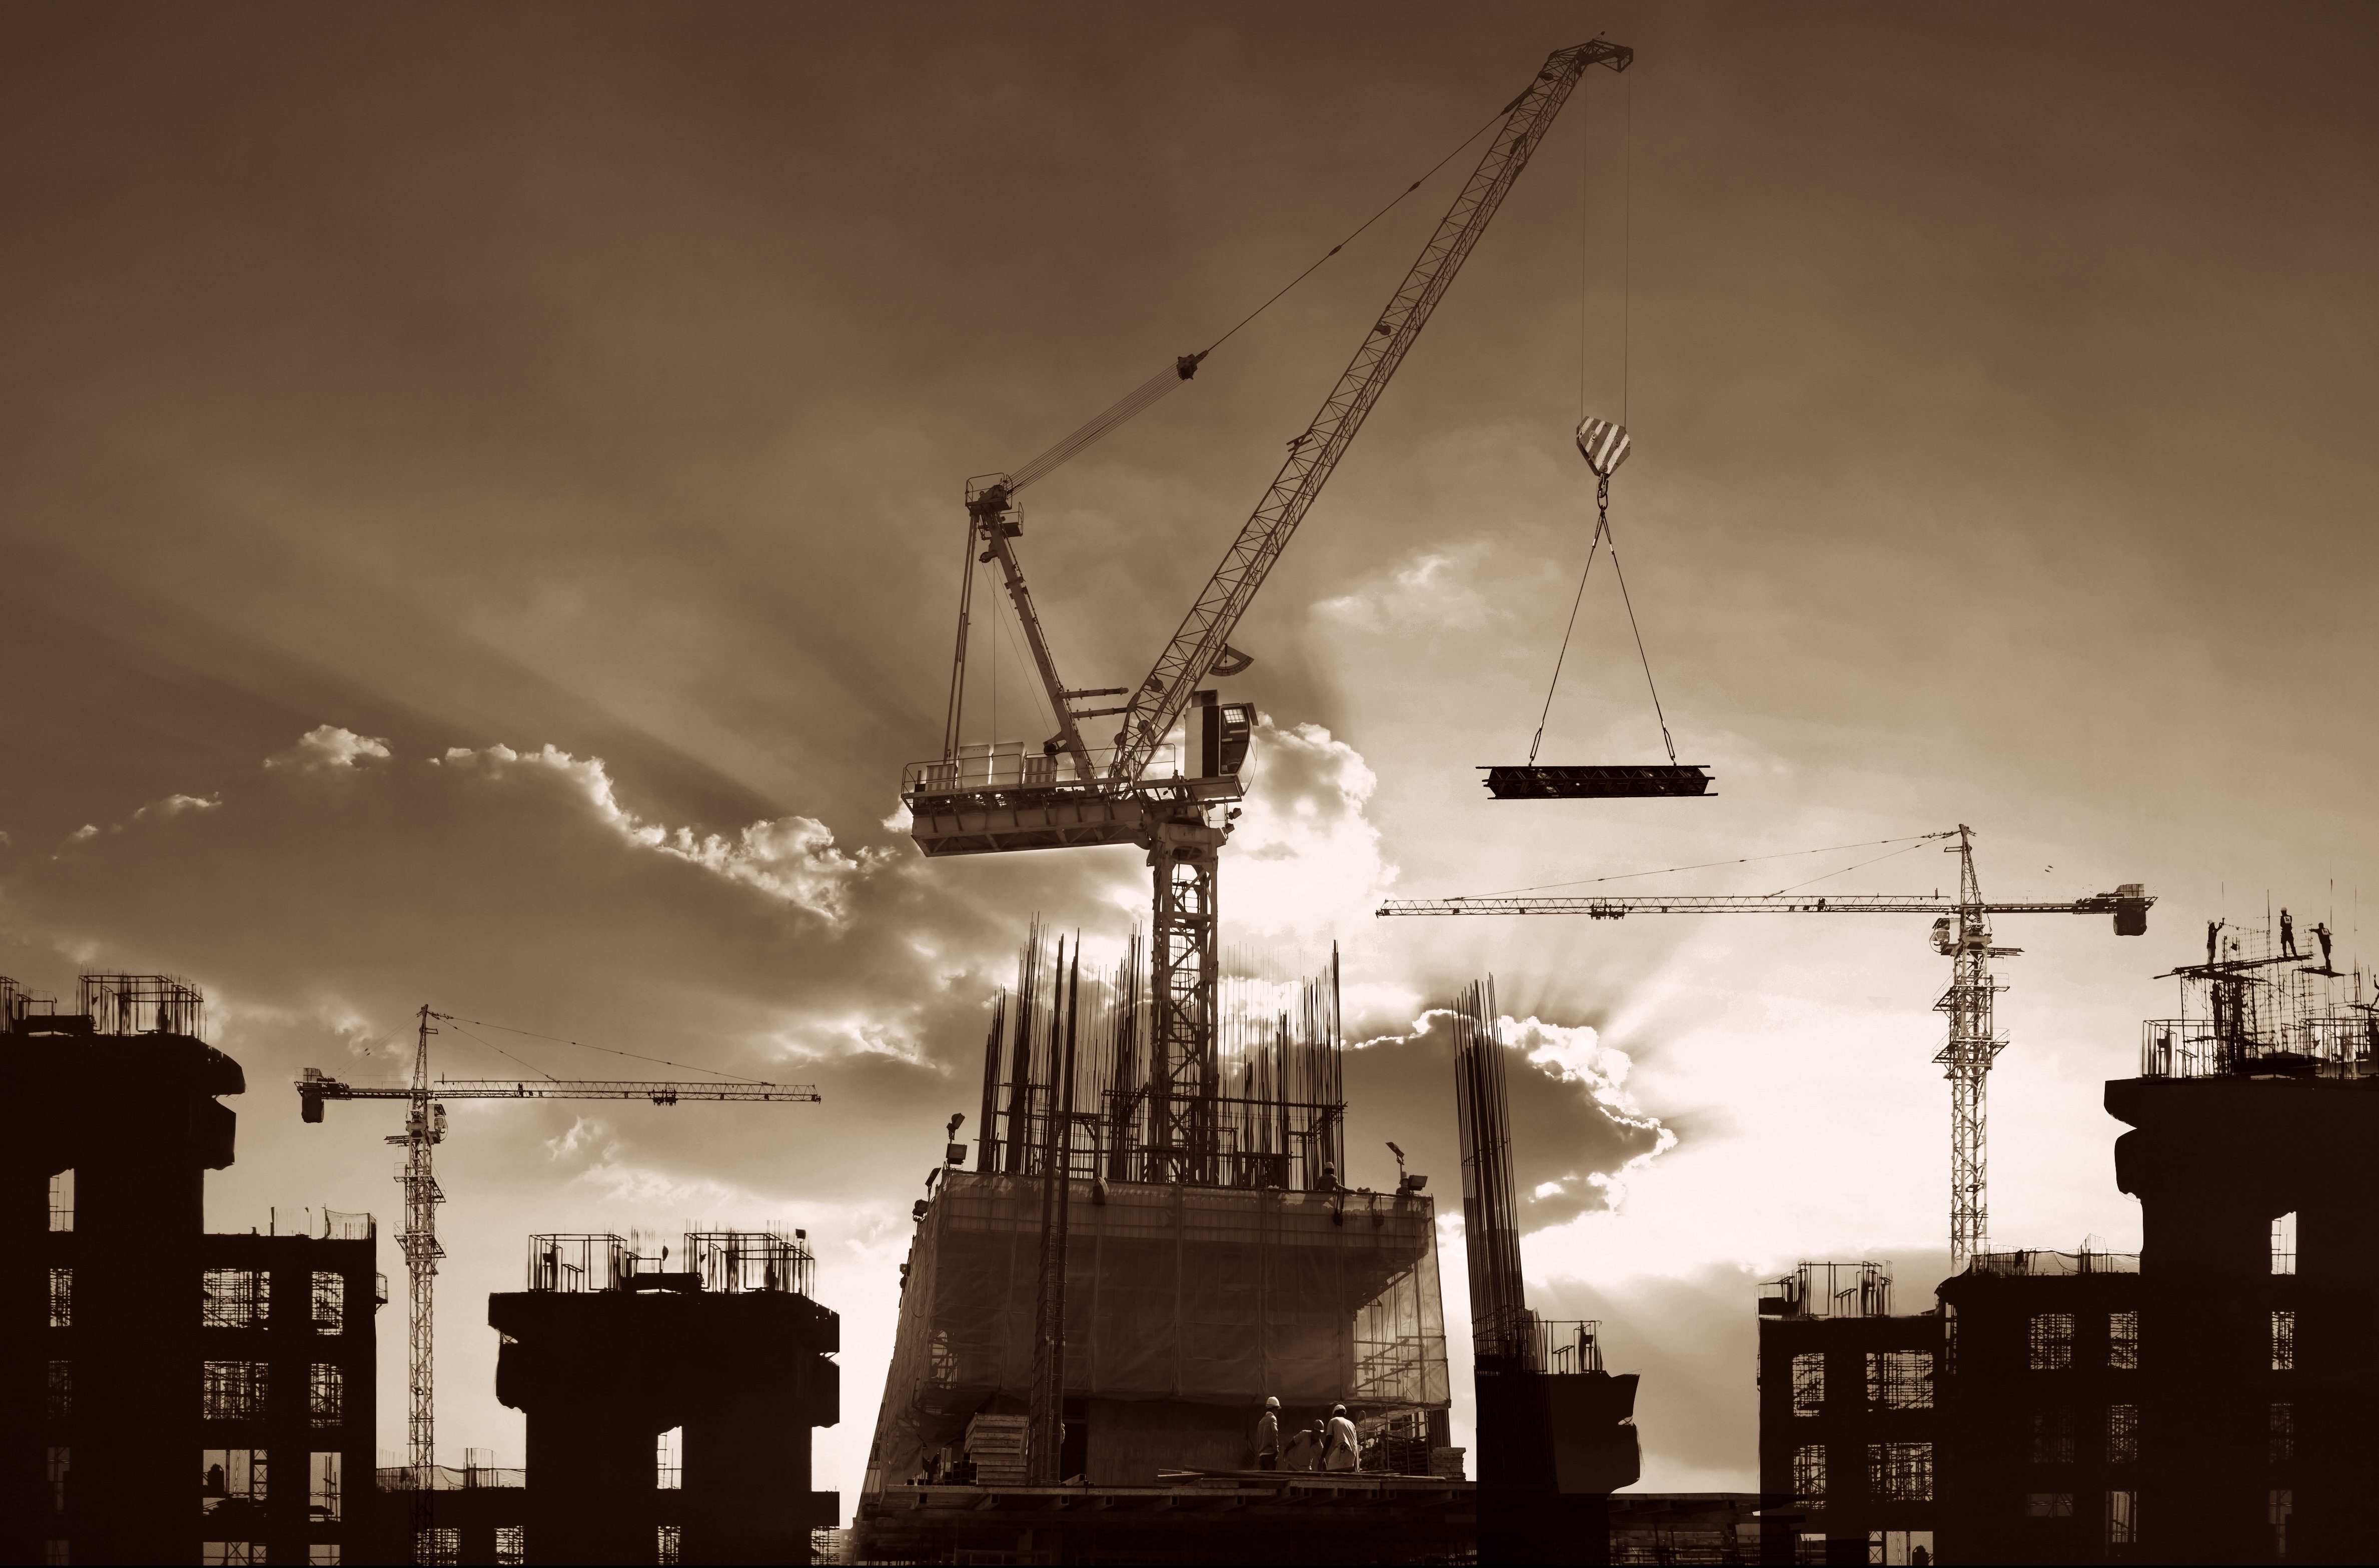 Cranes and buildings in construction silhouetted against sunset